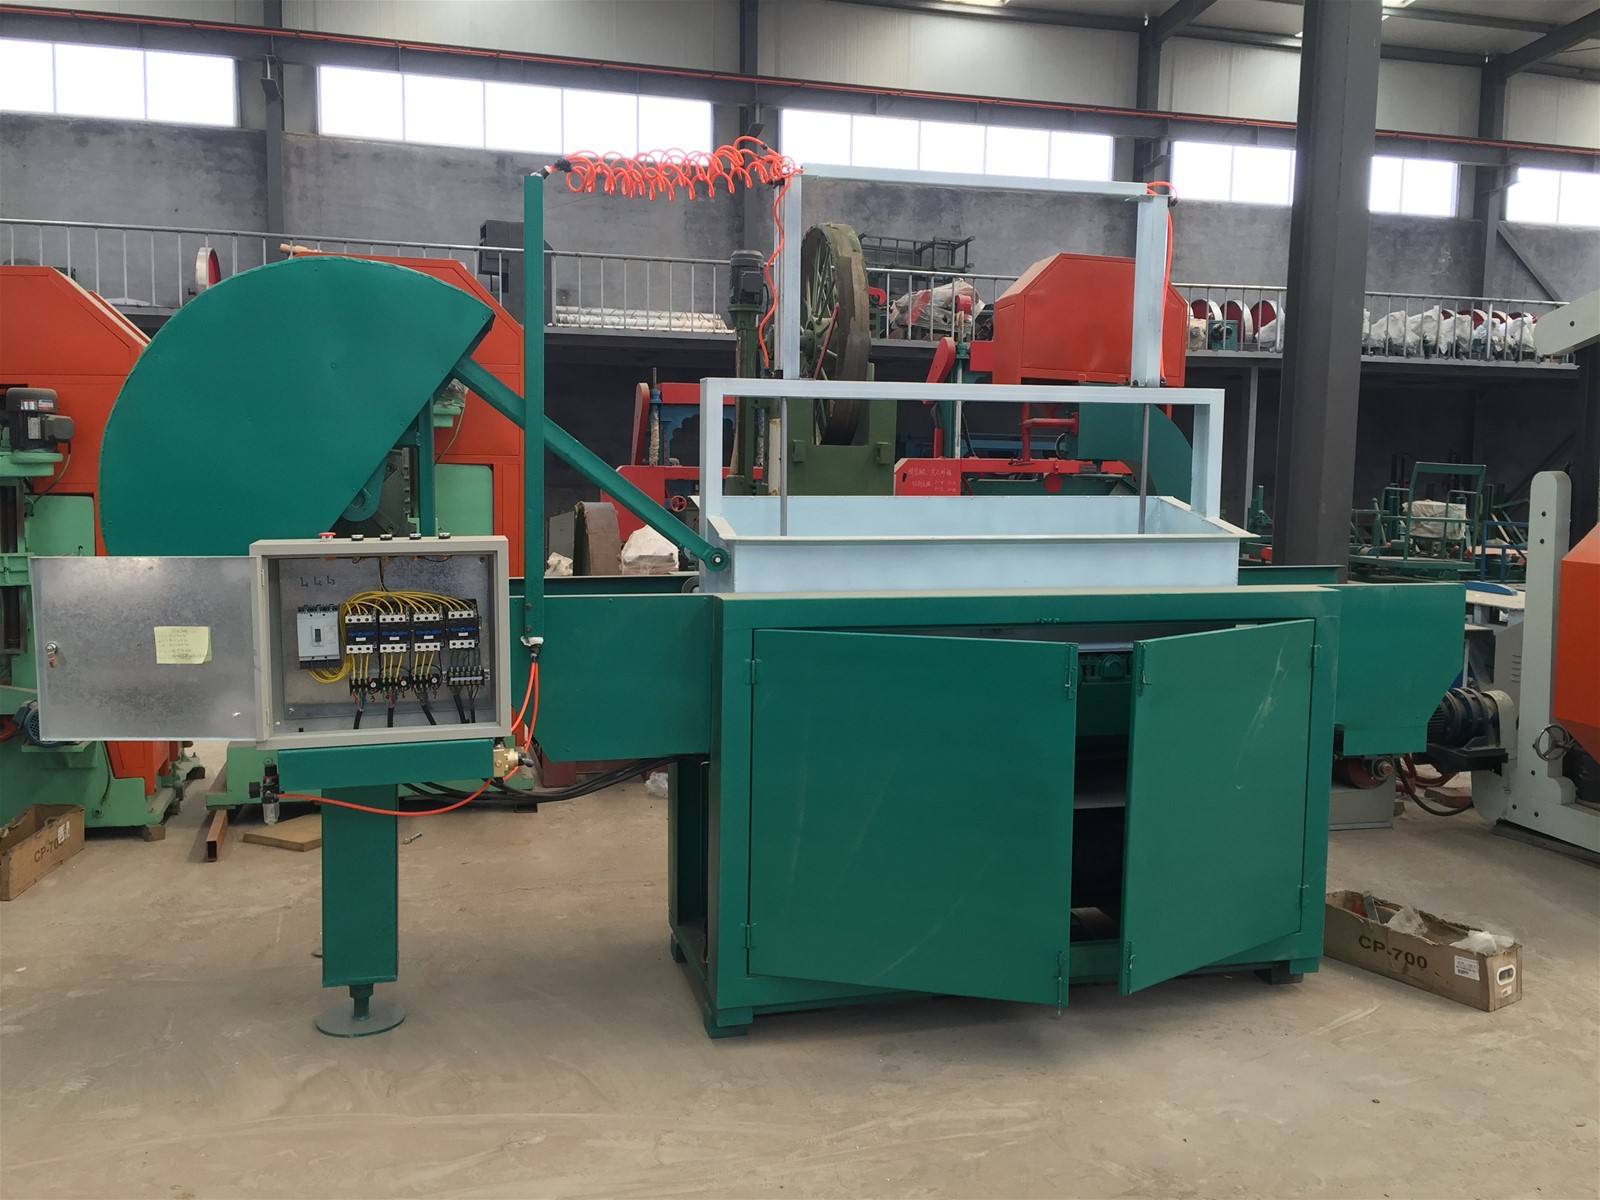 Poultry beddingfarm used Automatic Electric SHBH5001 Wood Shavings Machines